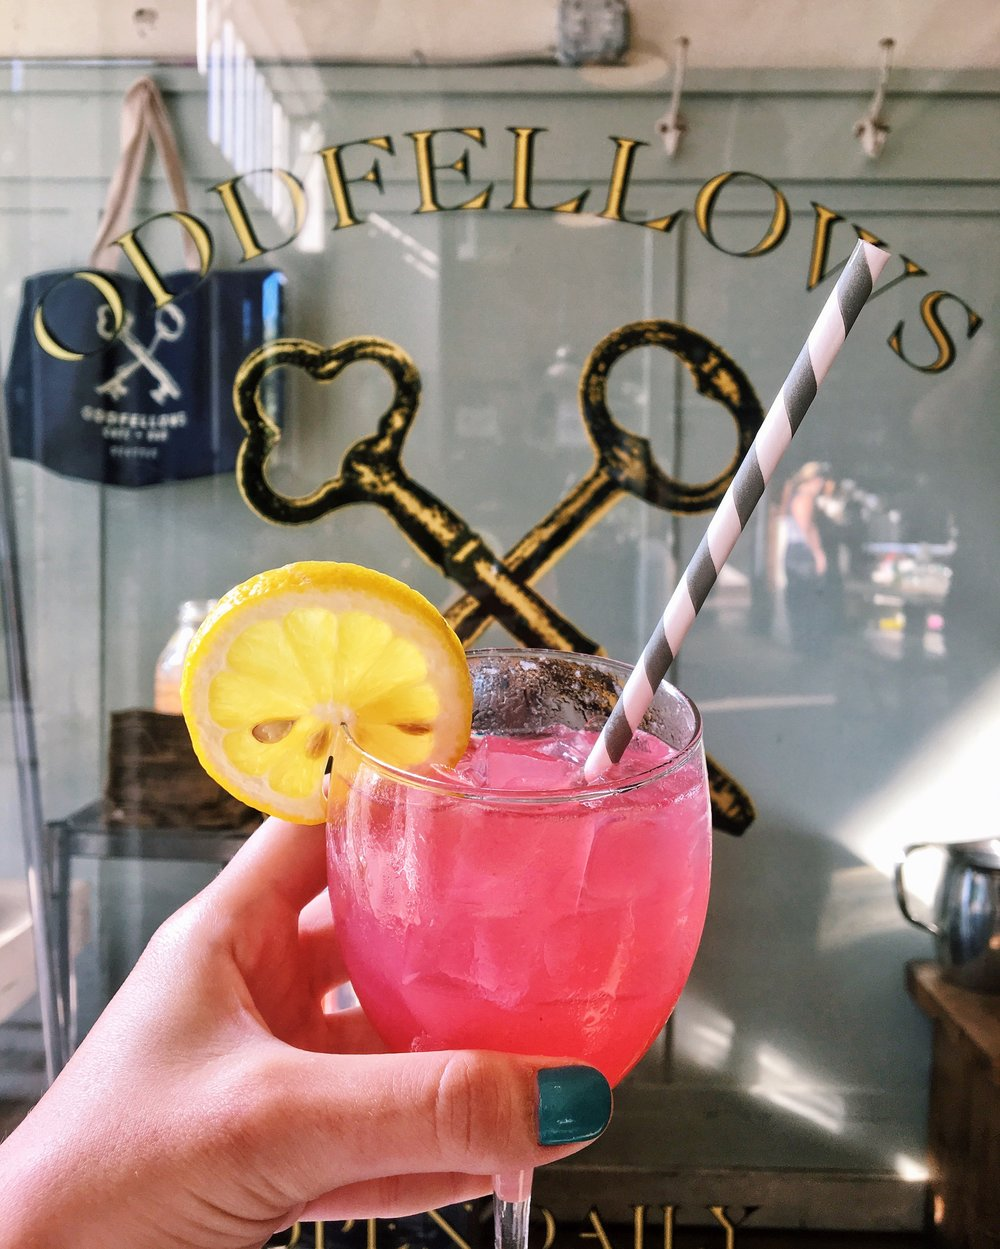 Oddfellows Cafe - Seattle